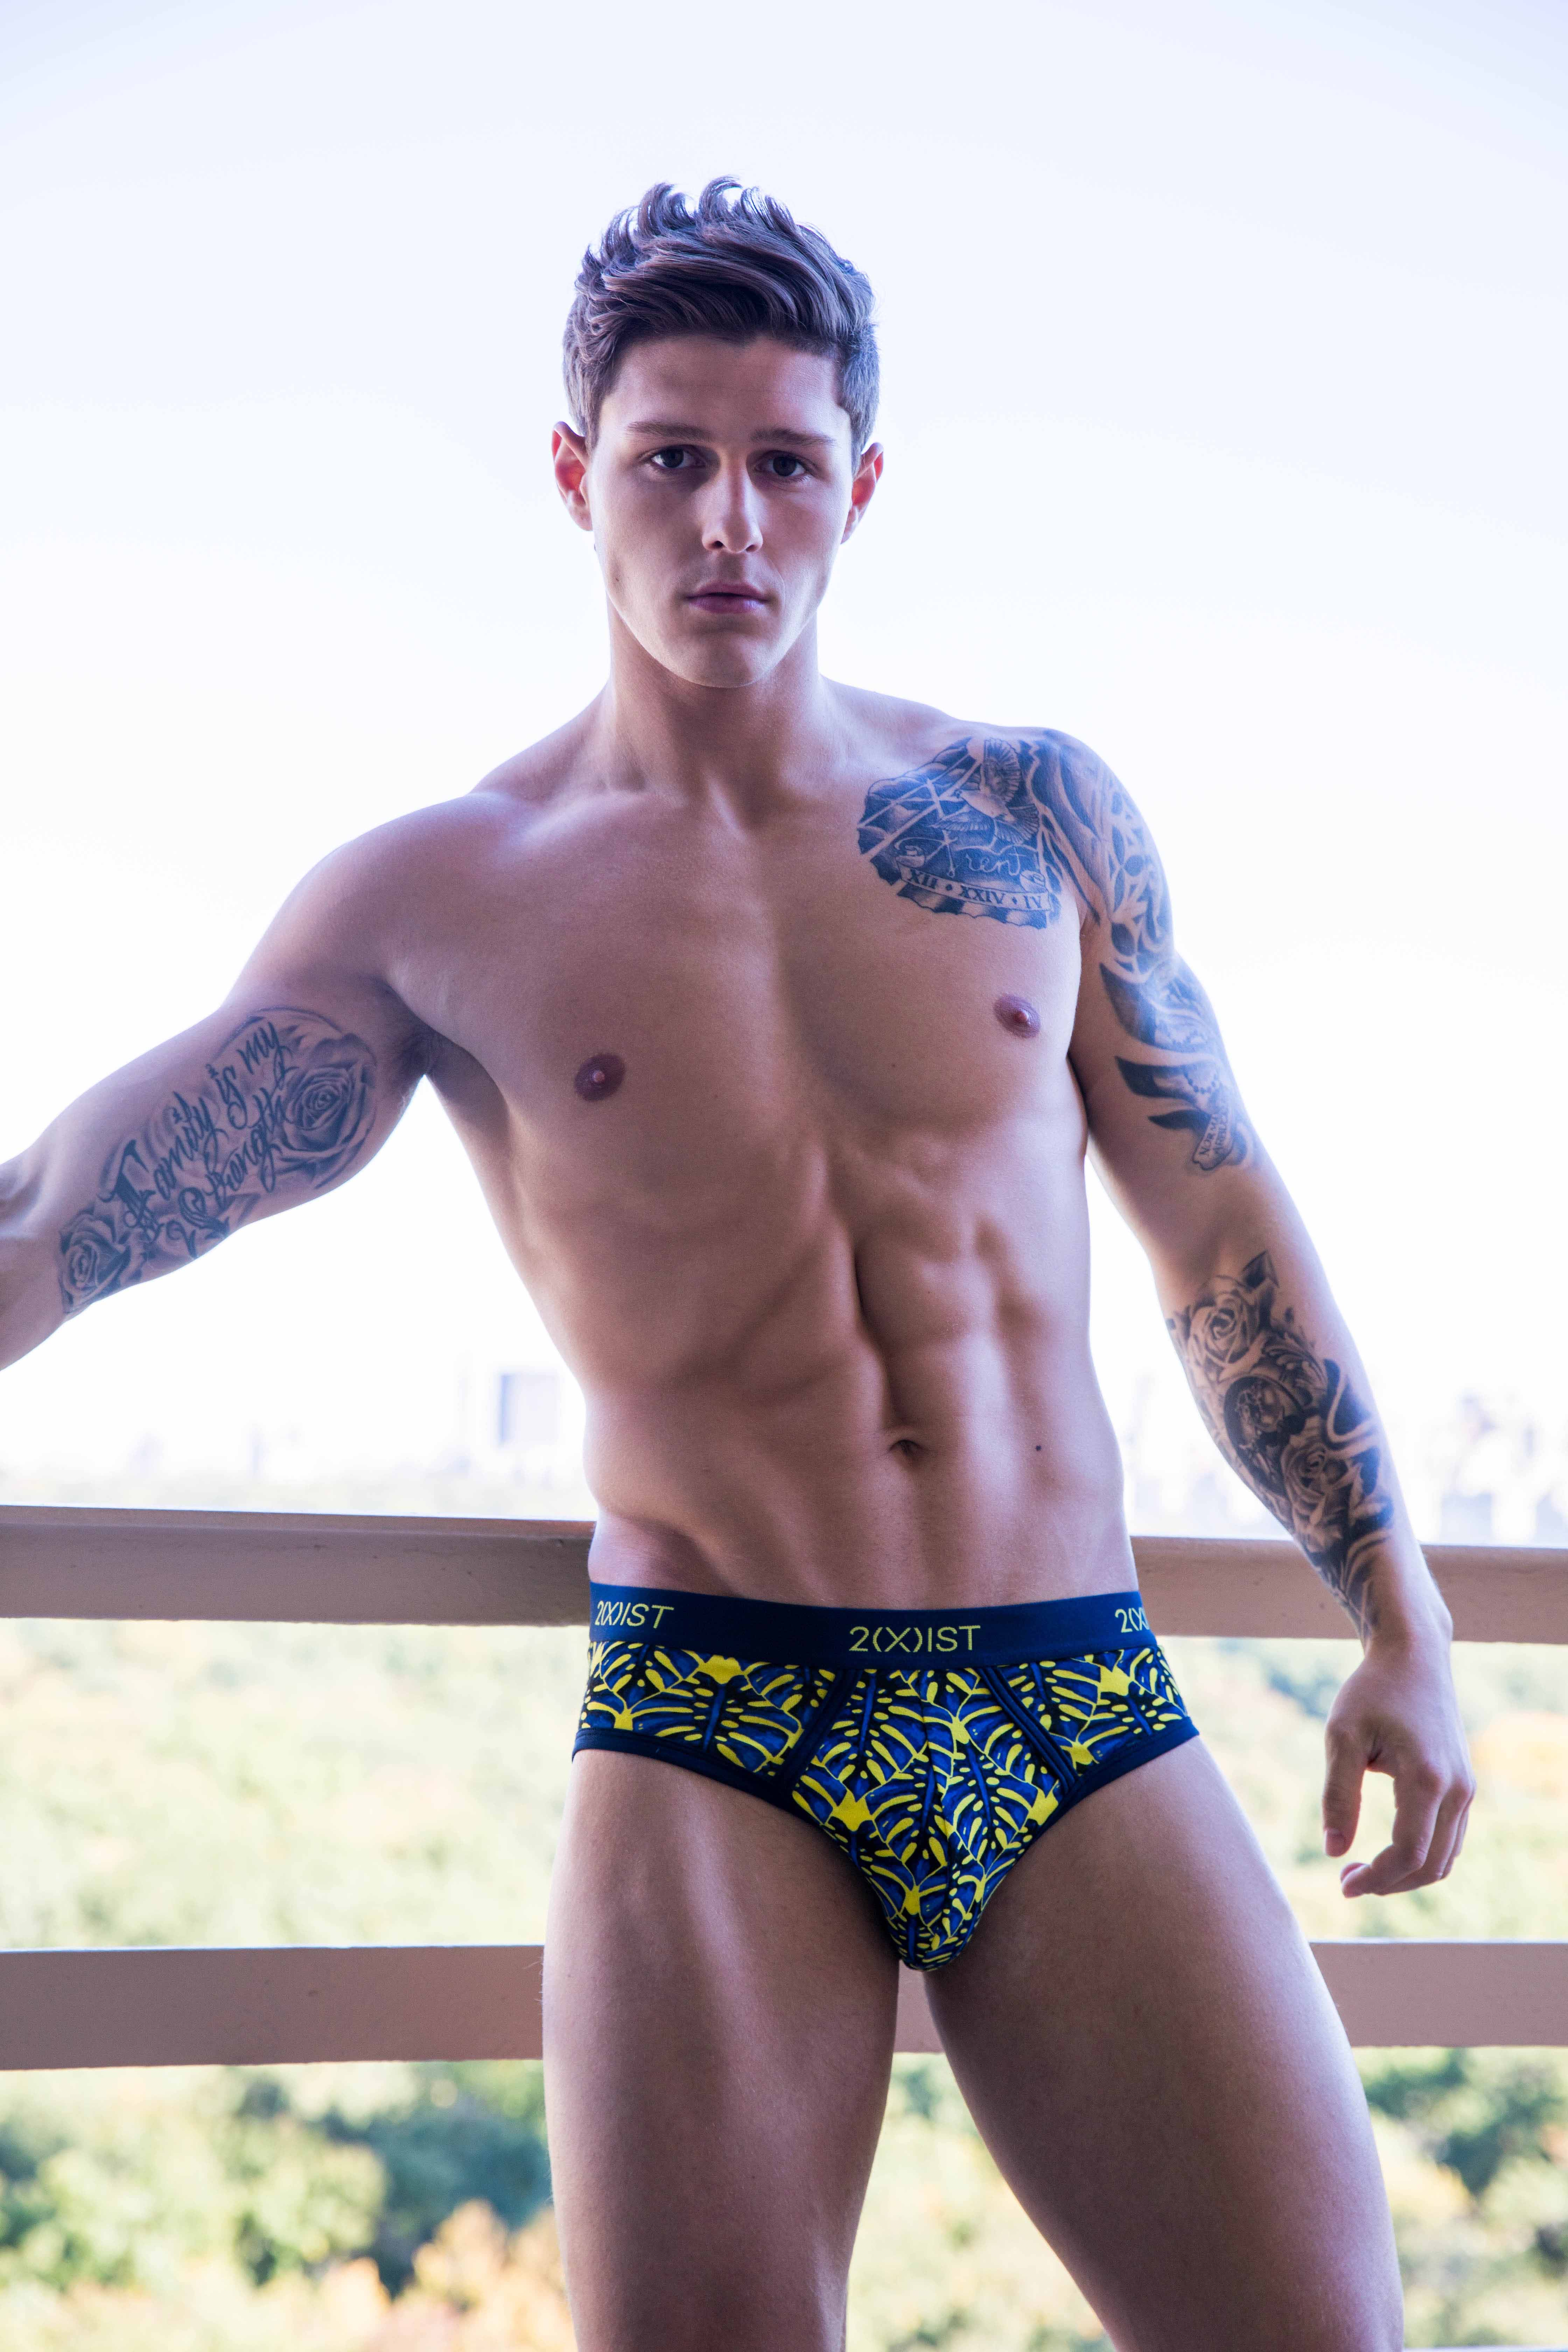 Reece Holder photographed by Harold Mindel in 2XIST underwear